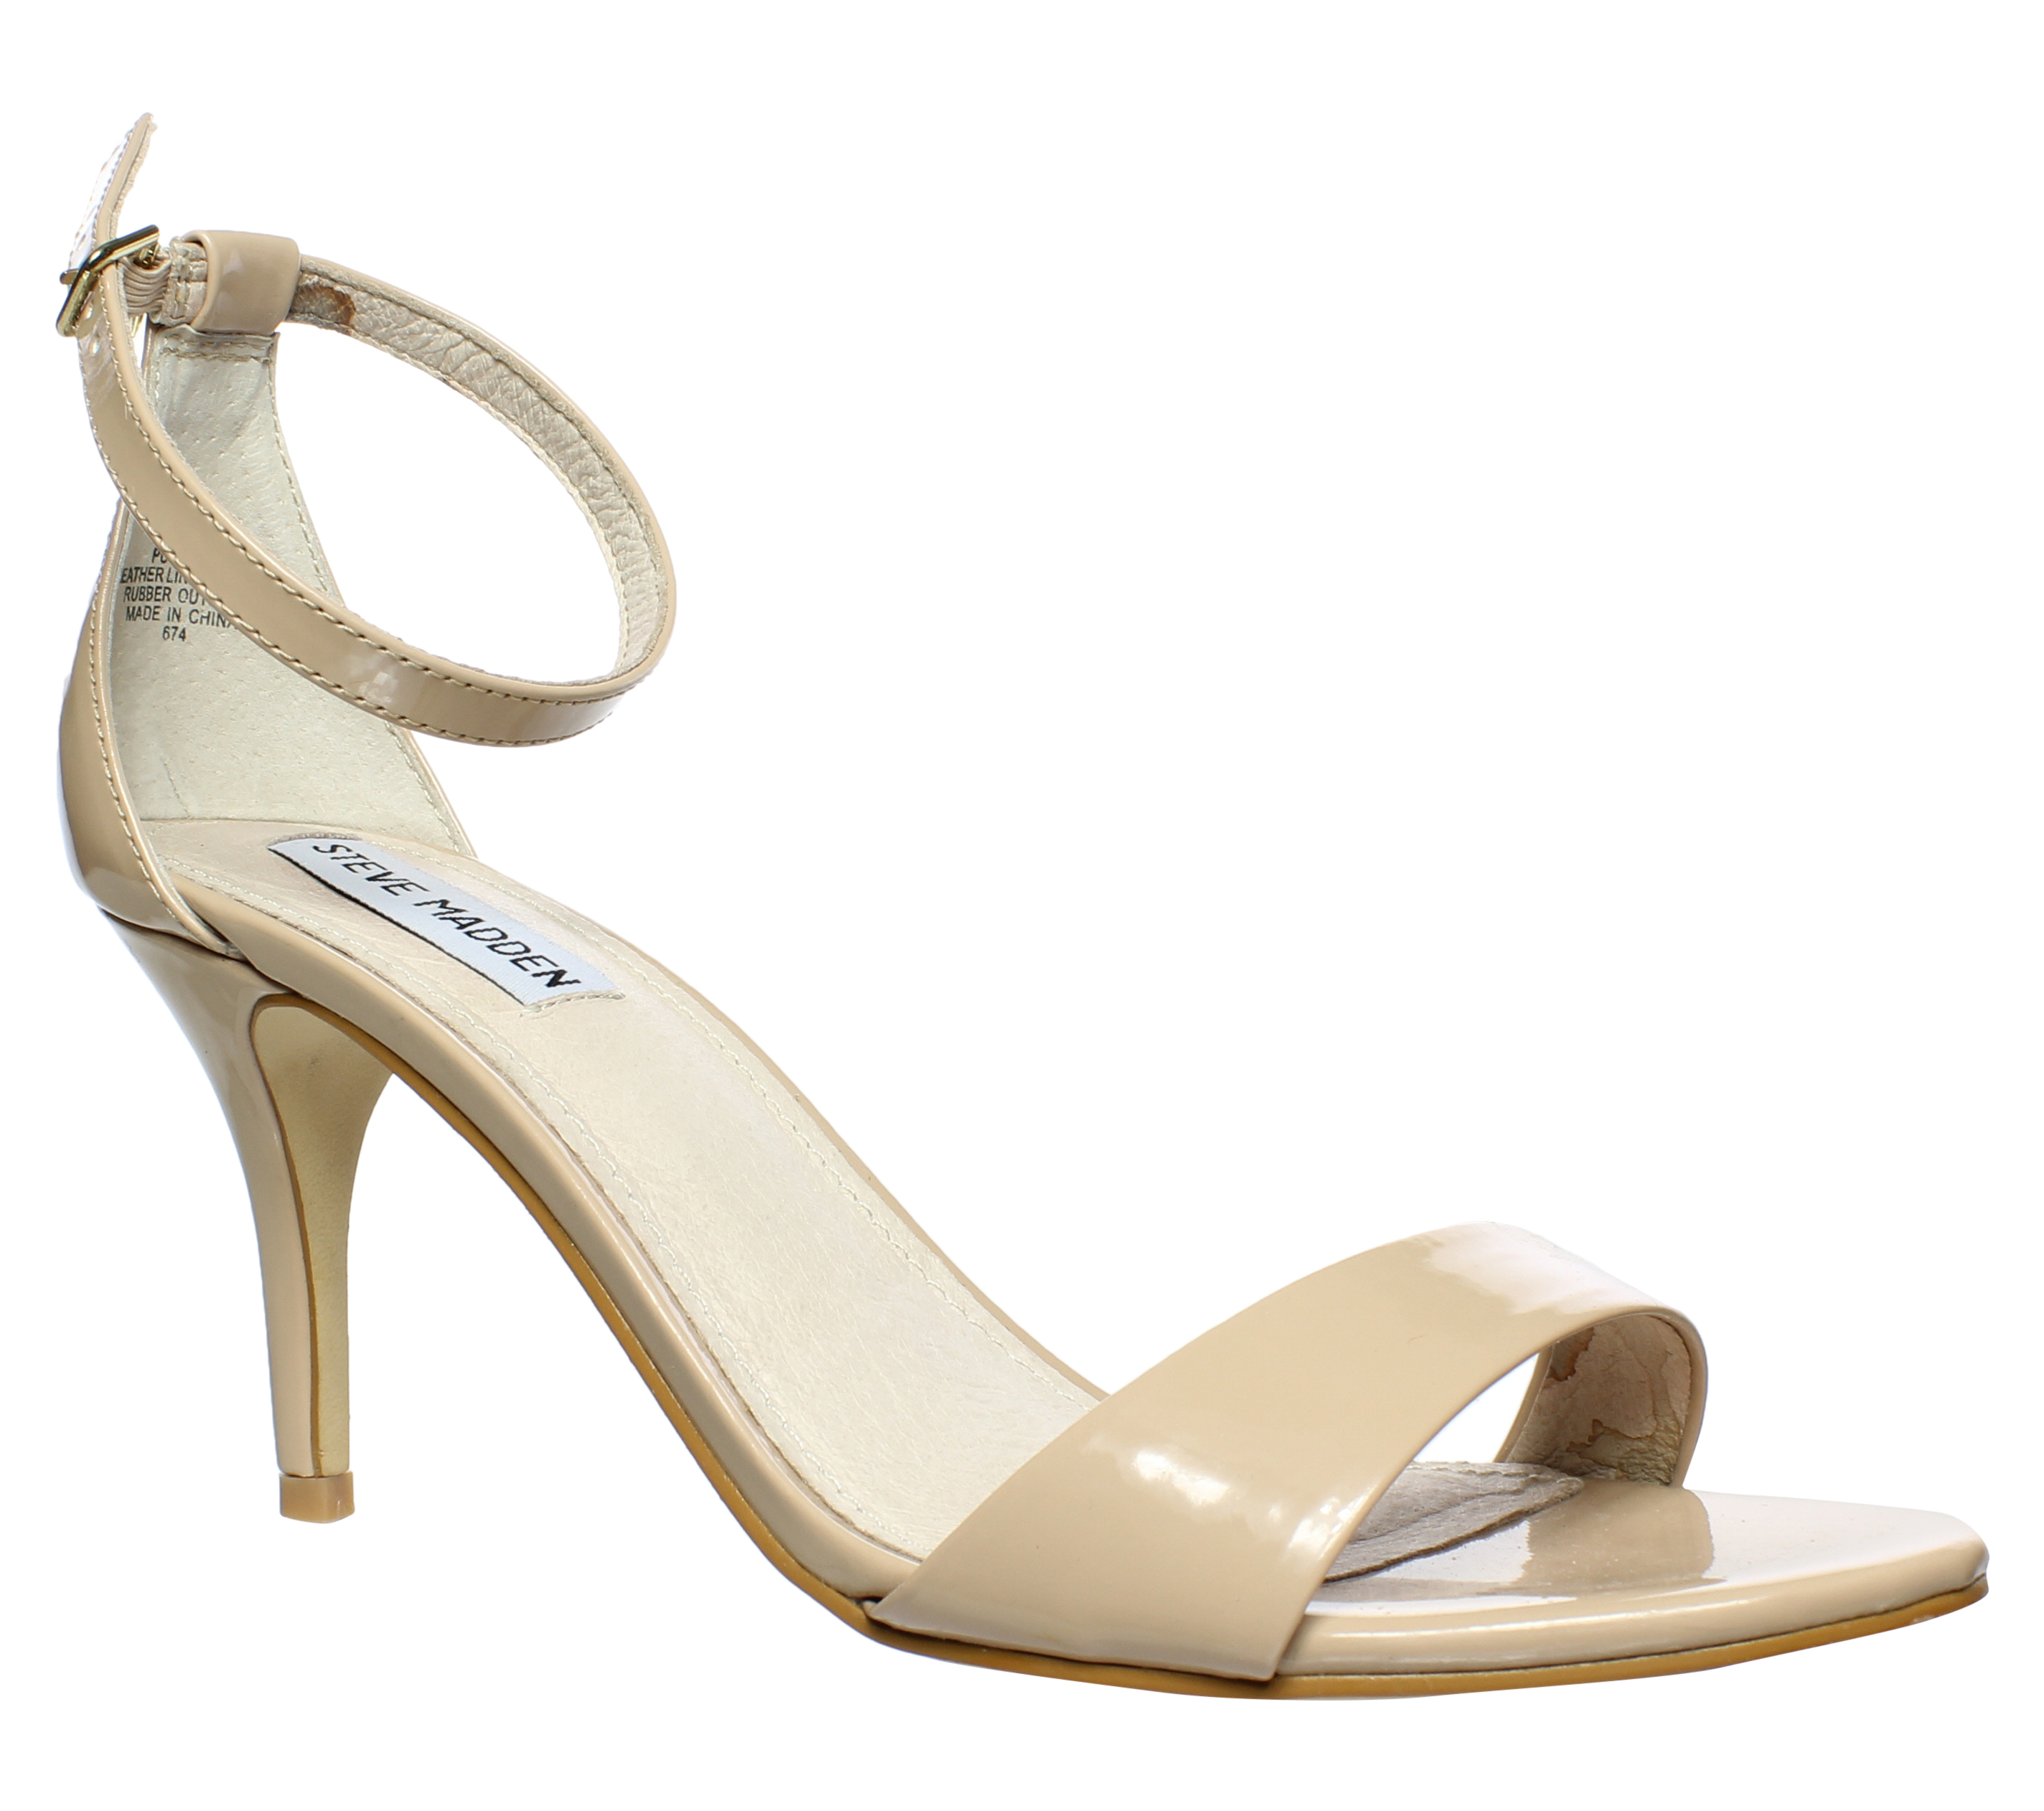 527ab673a750 Steve Madden Womens Sillly Blush Patent Sandals Size 10 (29354 ...